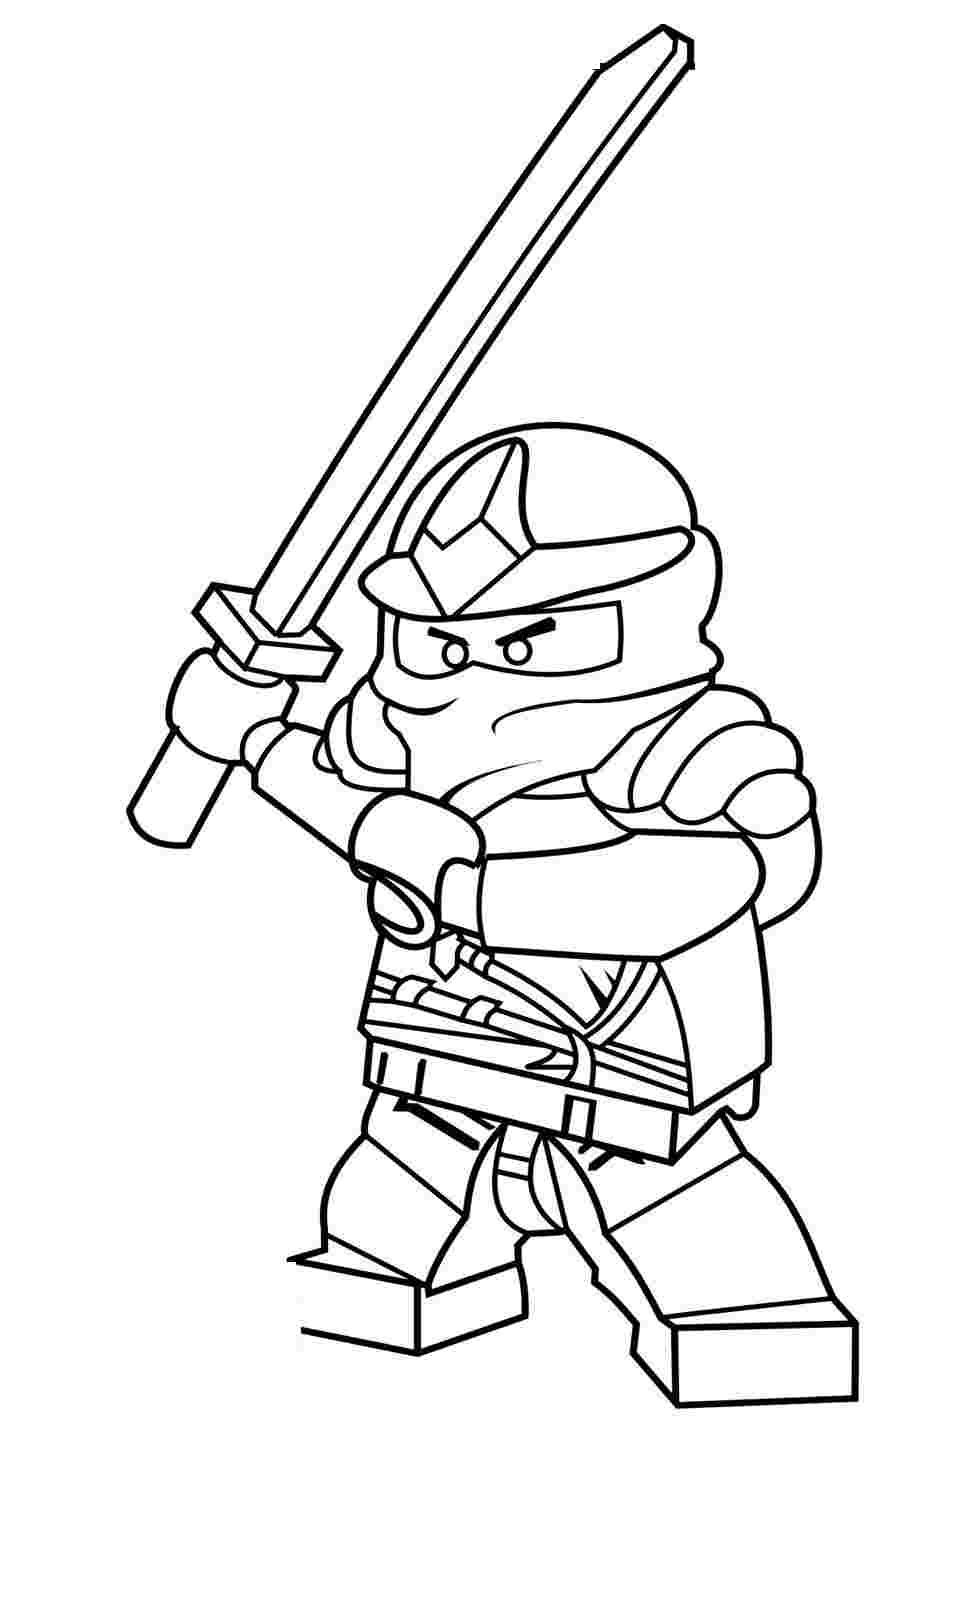 Coloring Pages Ideas